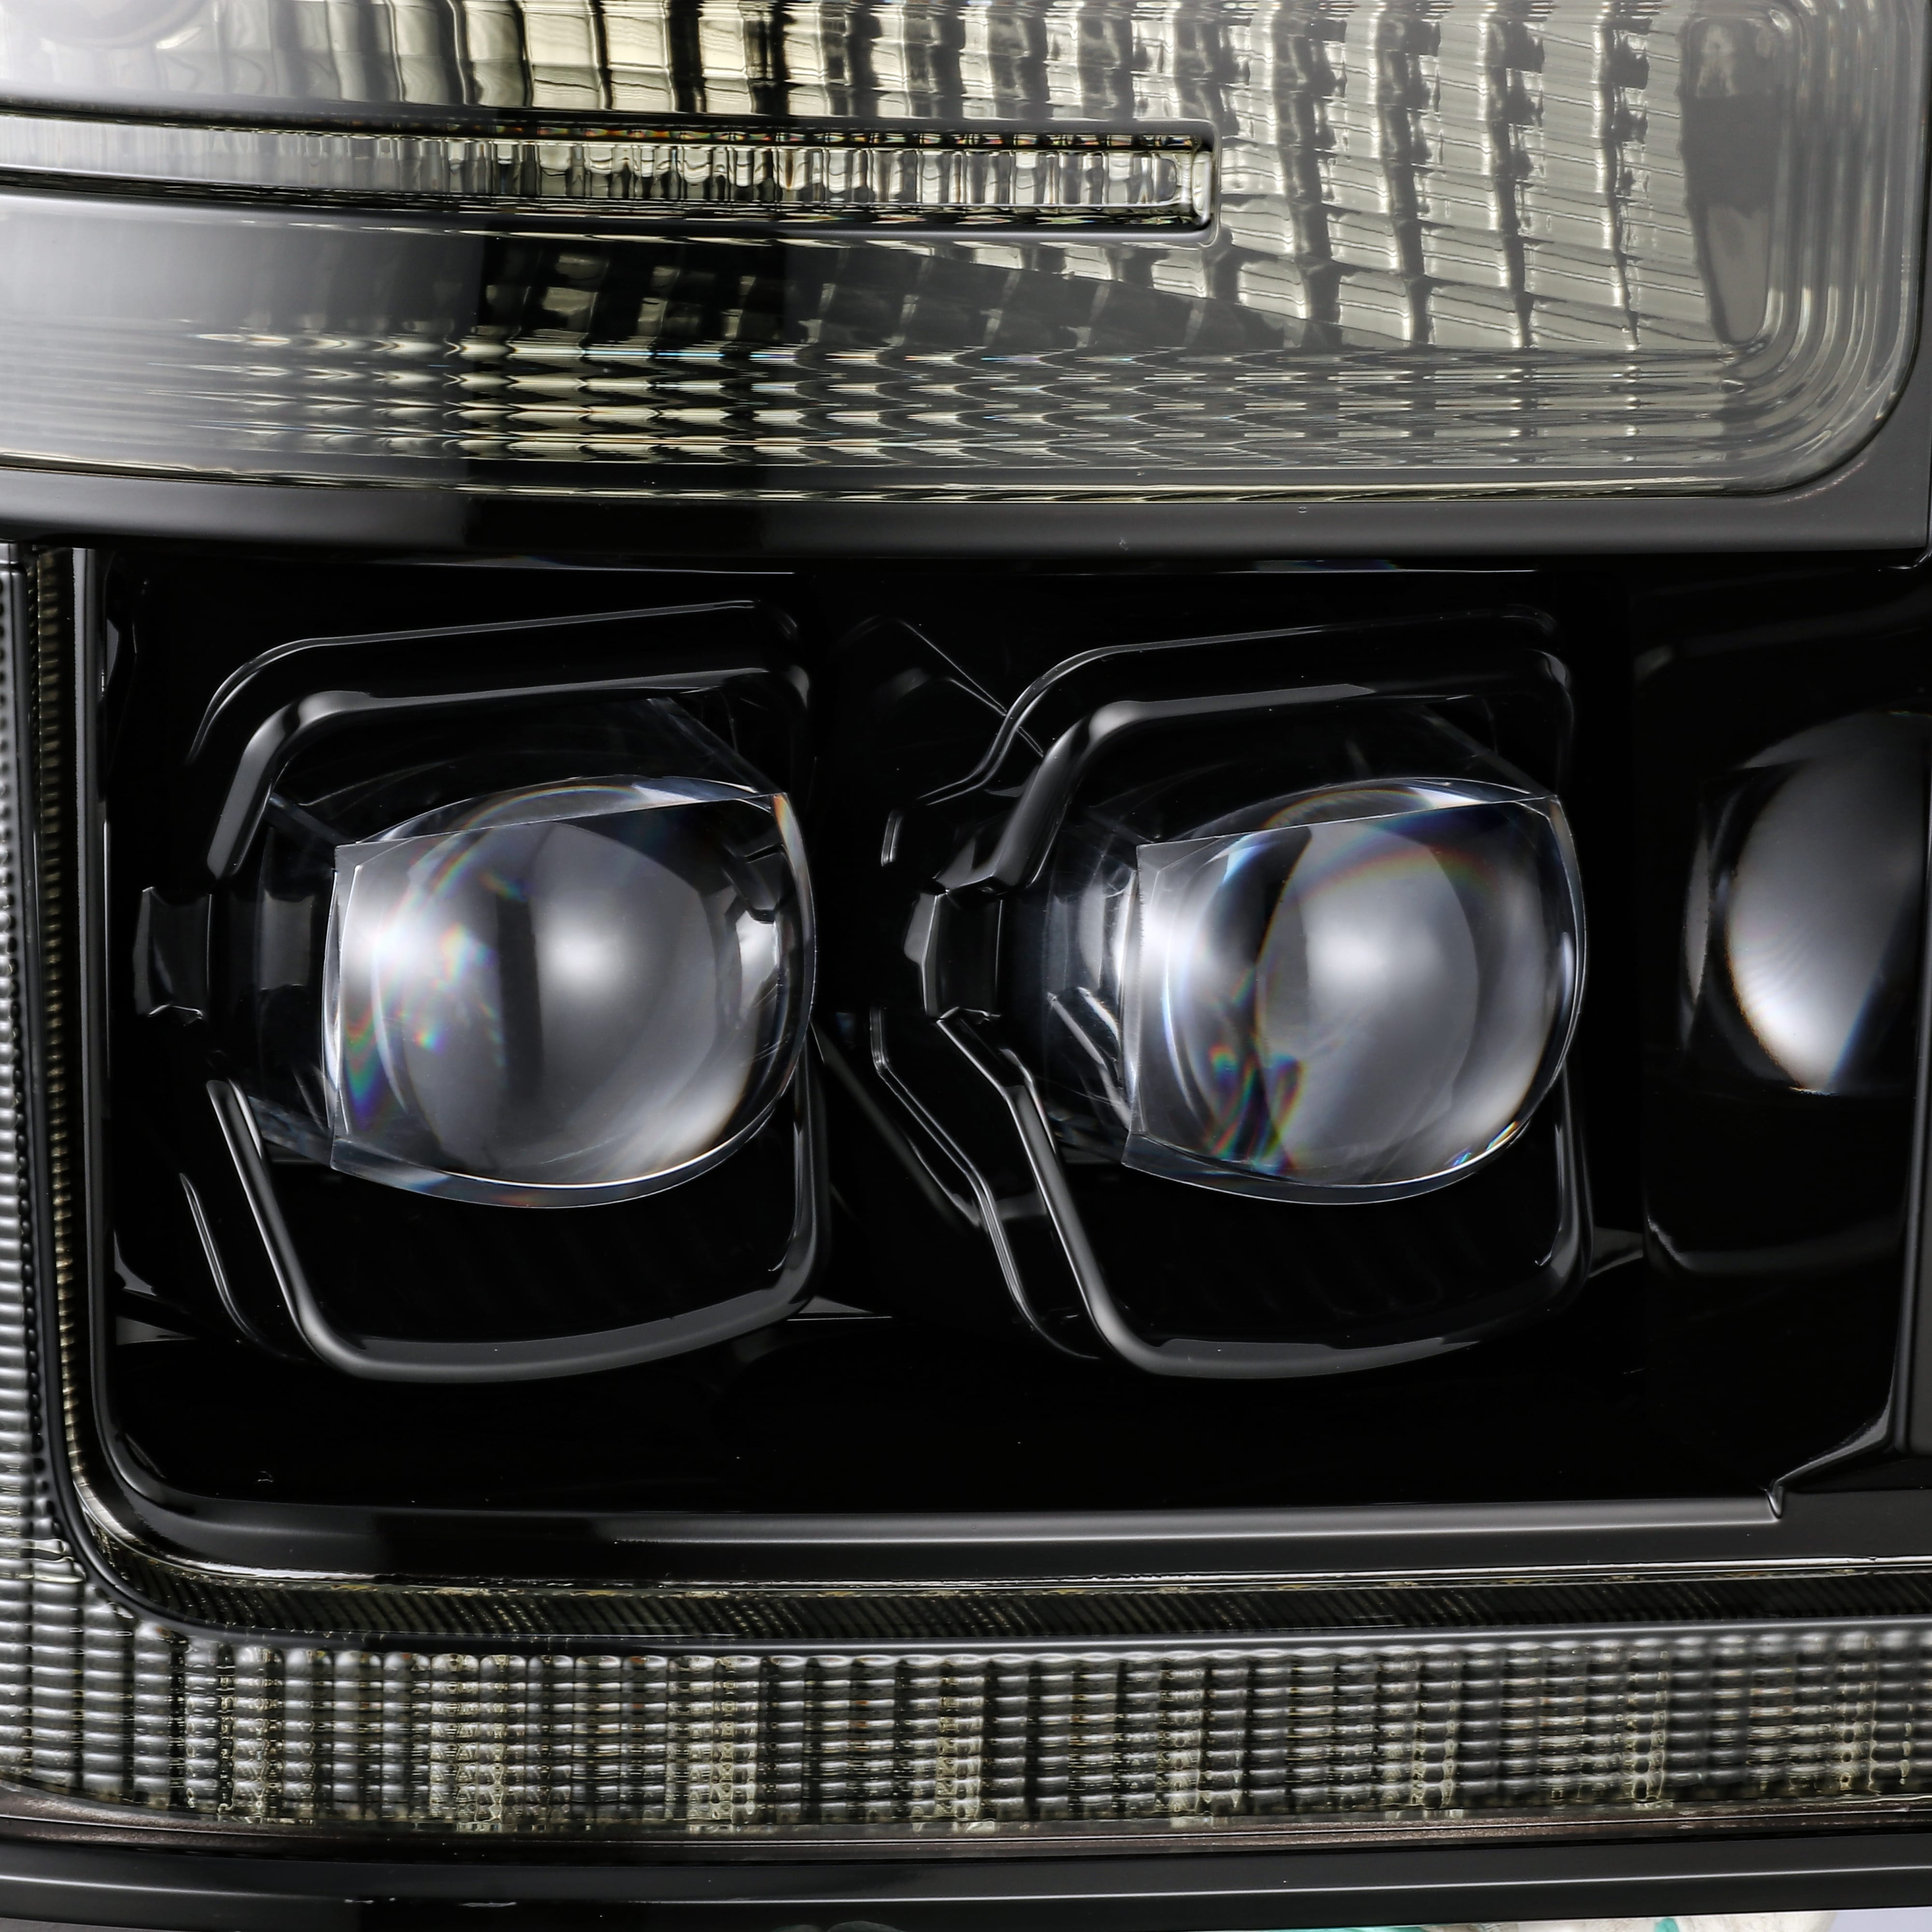 2011 2012 2013 2014 2015 2016 Ford F250 F350 F450 F550 Super Duty NOVA-Series Full LED Projector Headlights Alpha-Black